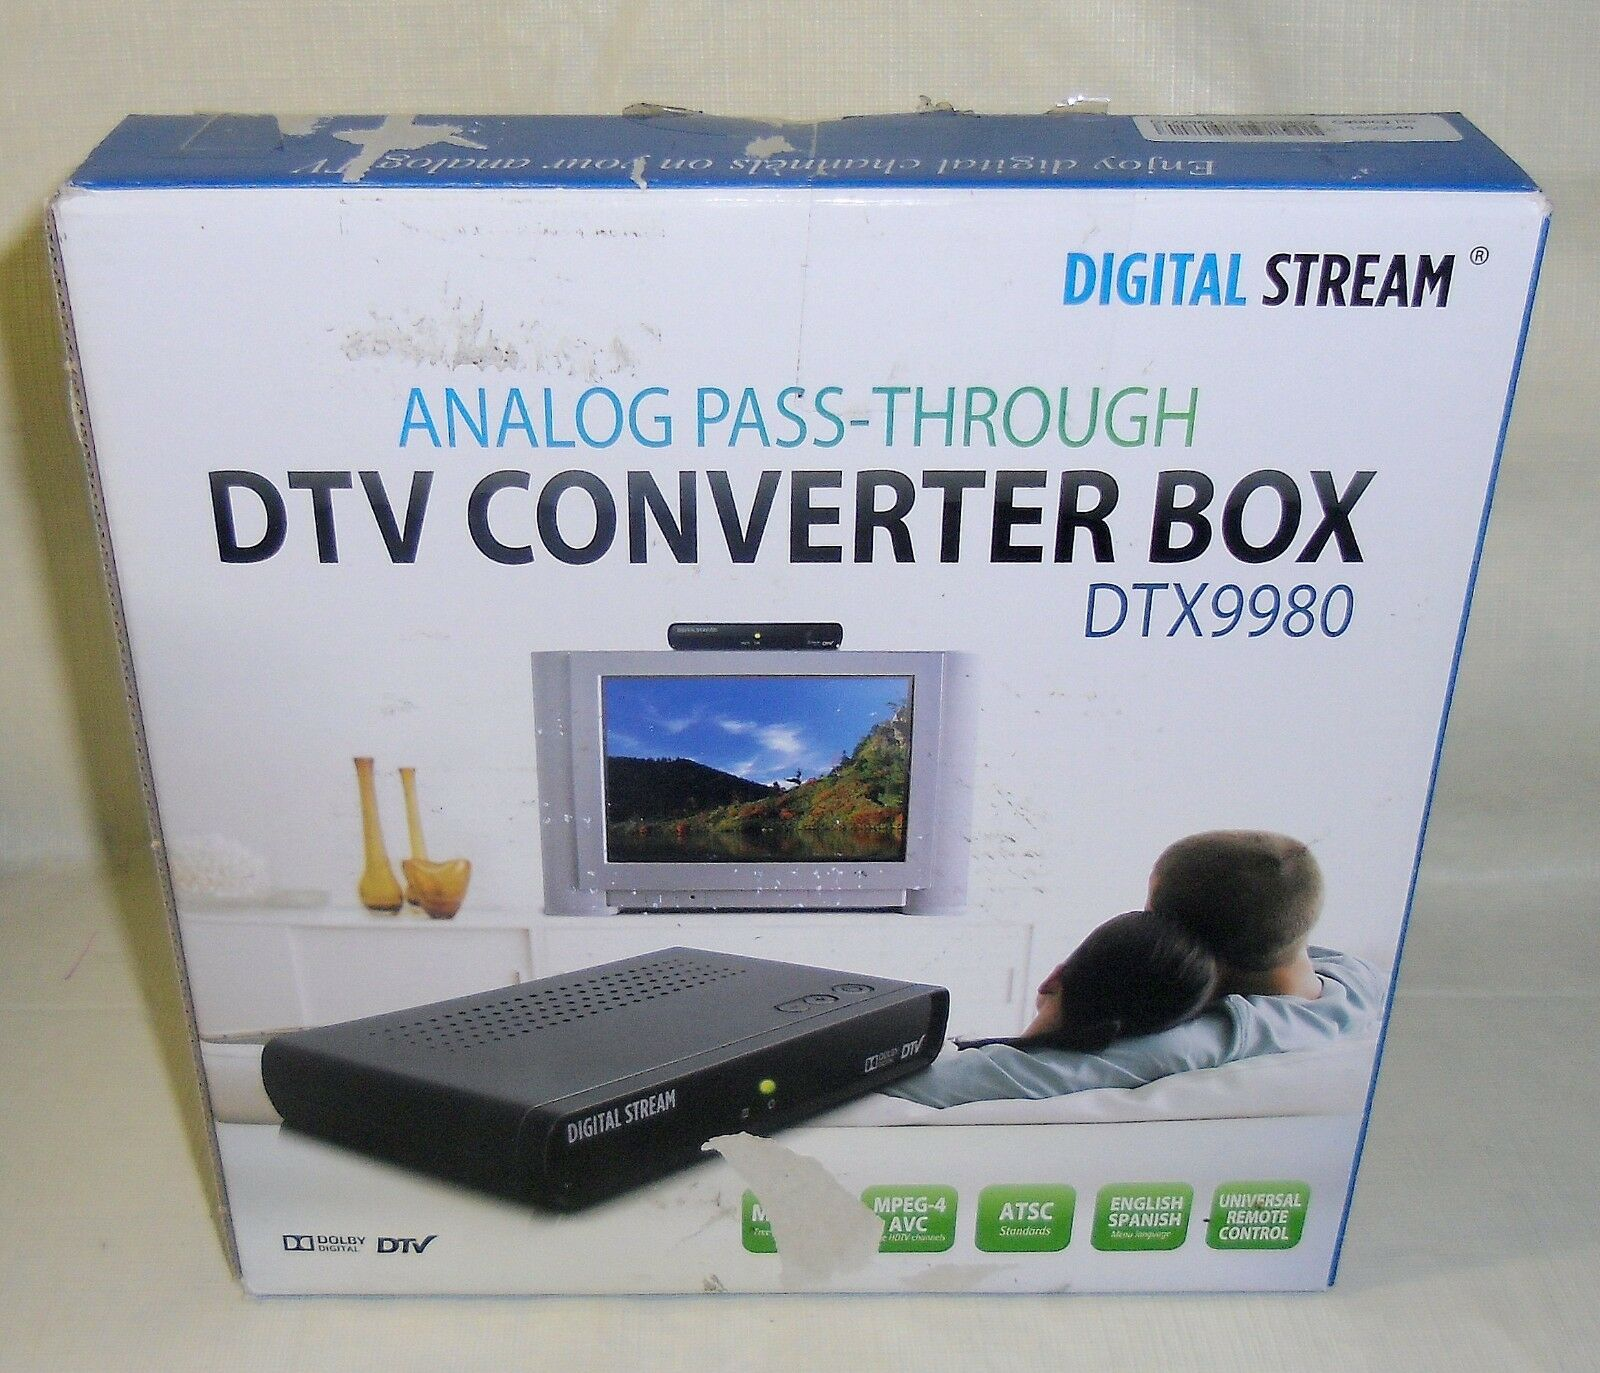 New Digital Stream DTX9980 DTV Converter Box Upgrade of DTX9950